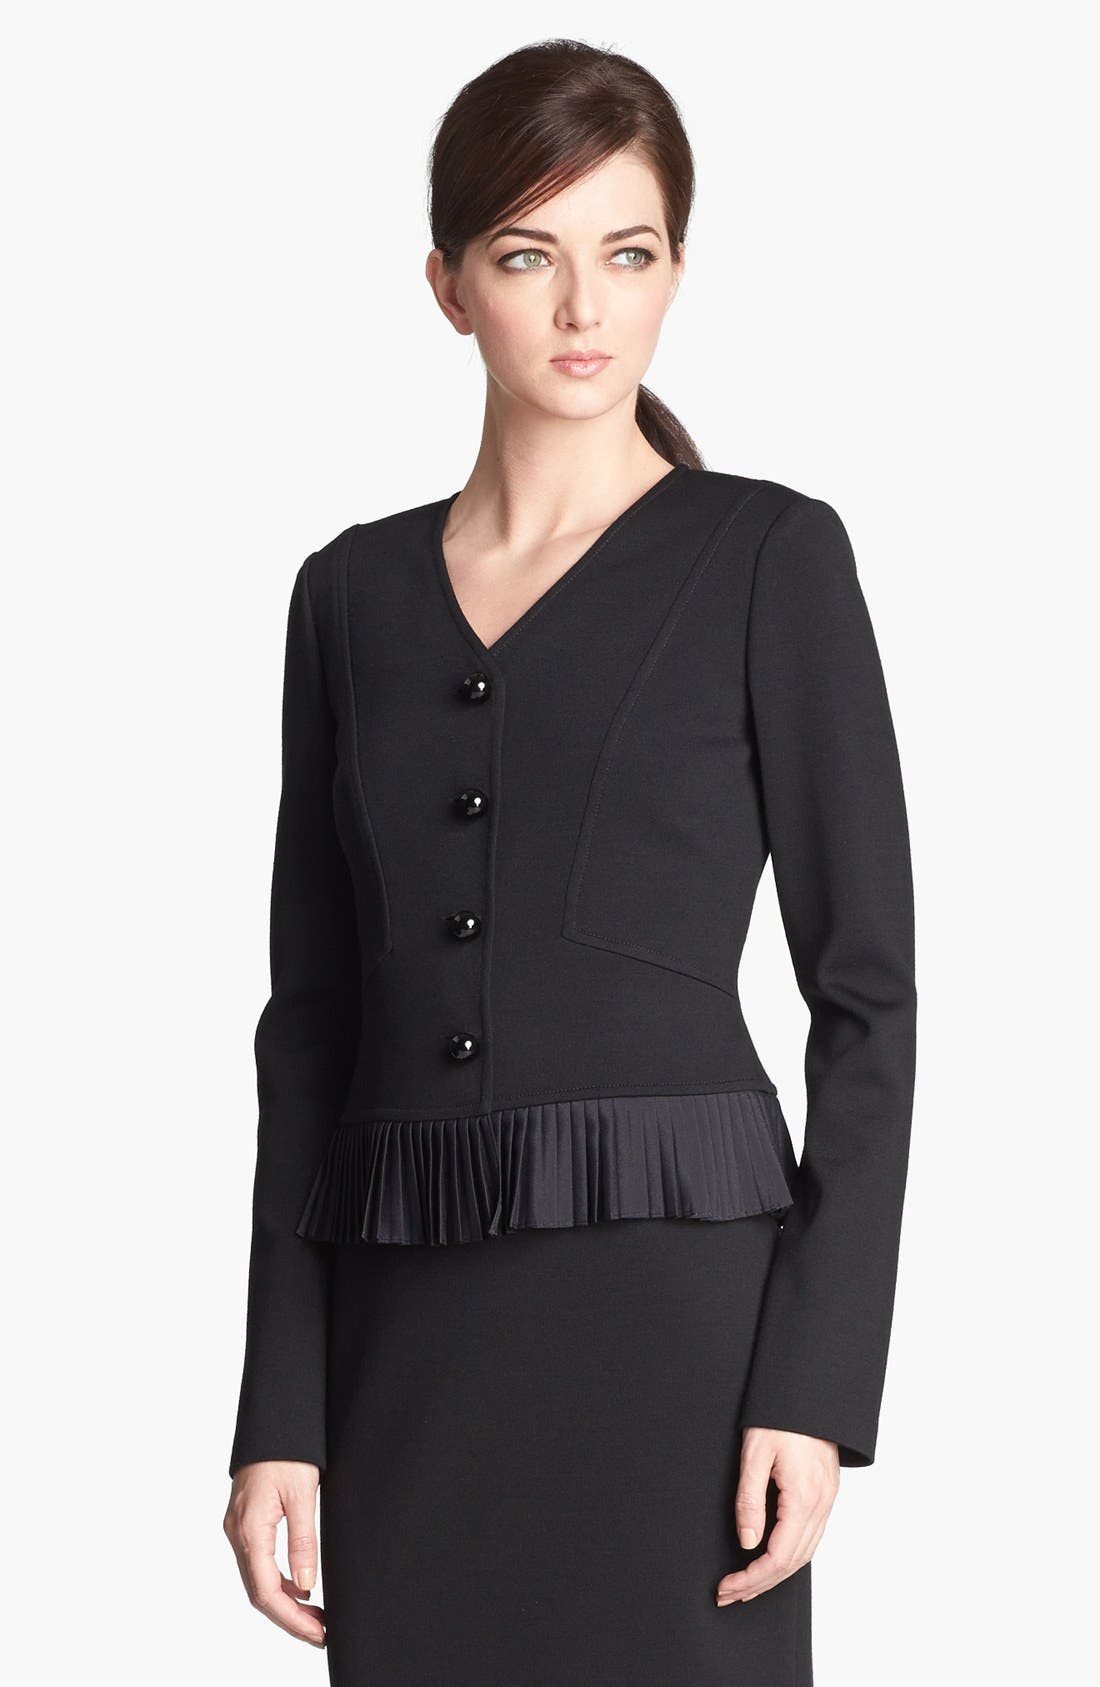 Main Image - St. John Collection Fitted Milano Knit Jacket